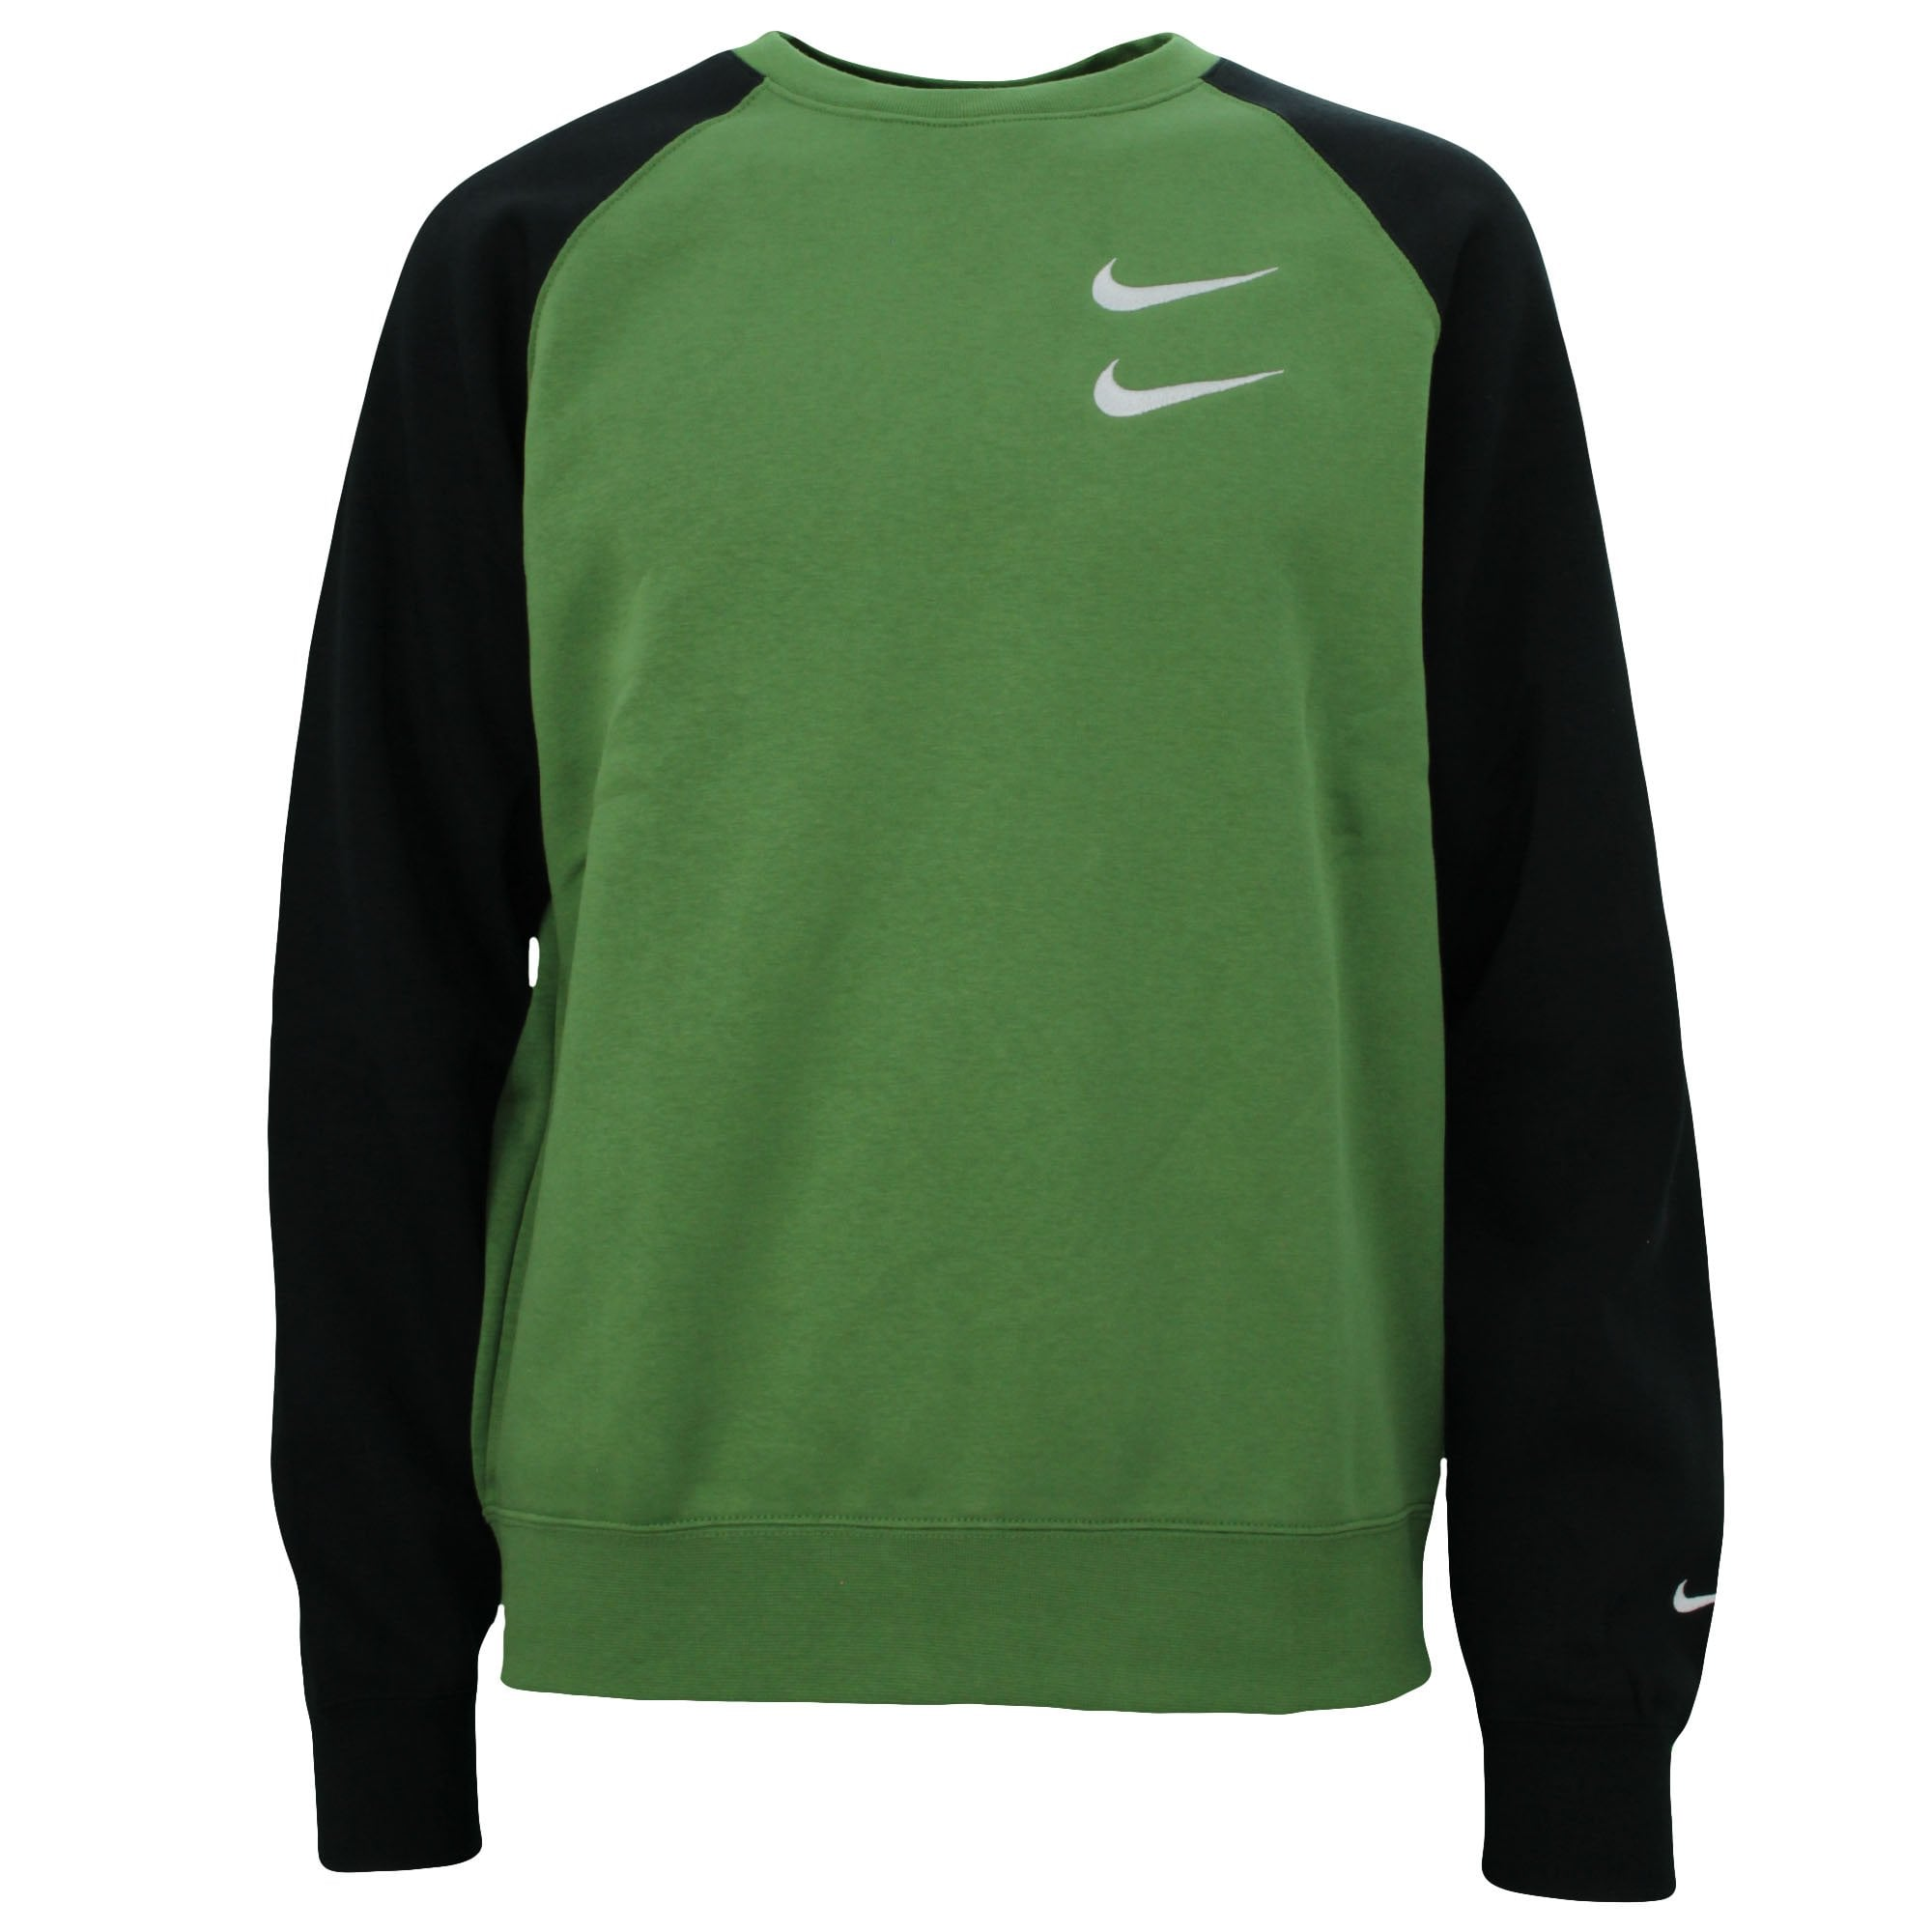 inercia Broma Sequía  NIKE CLOTHING Double Swoosh Green Sweatshirt - Mens from PILOT UK